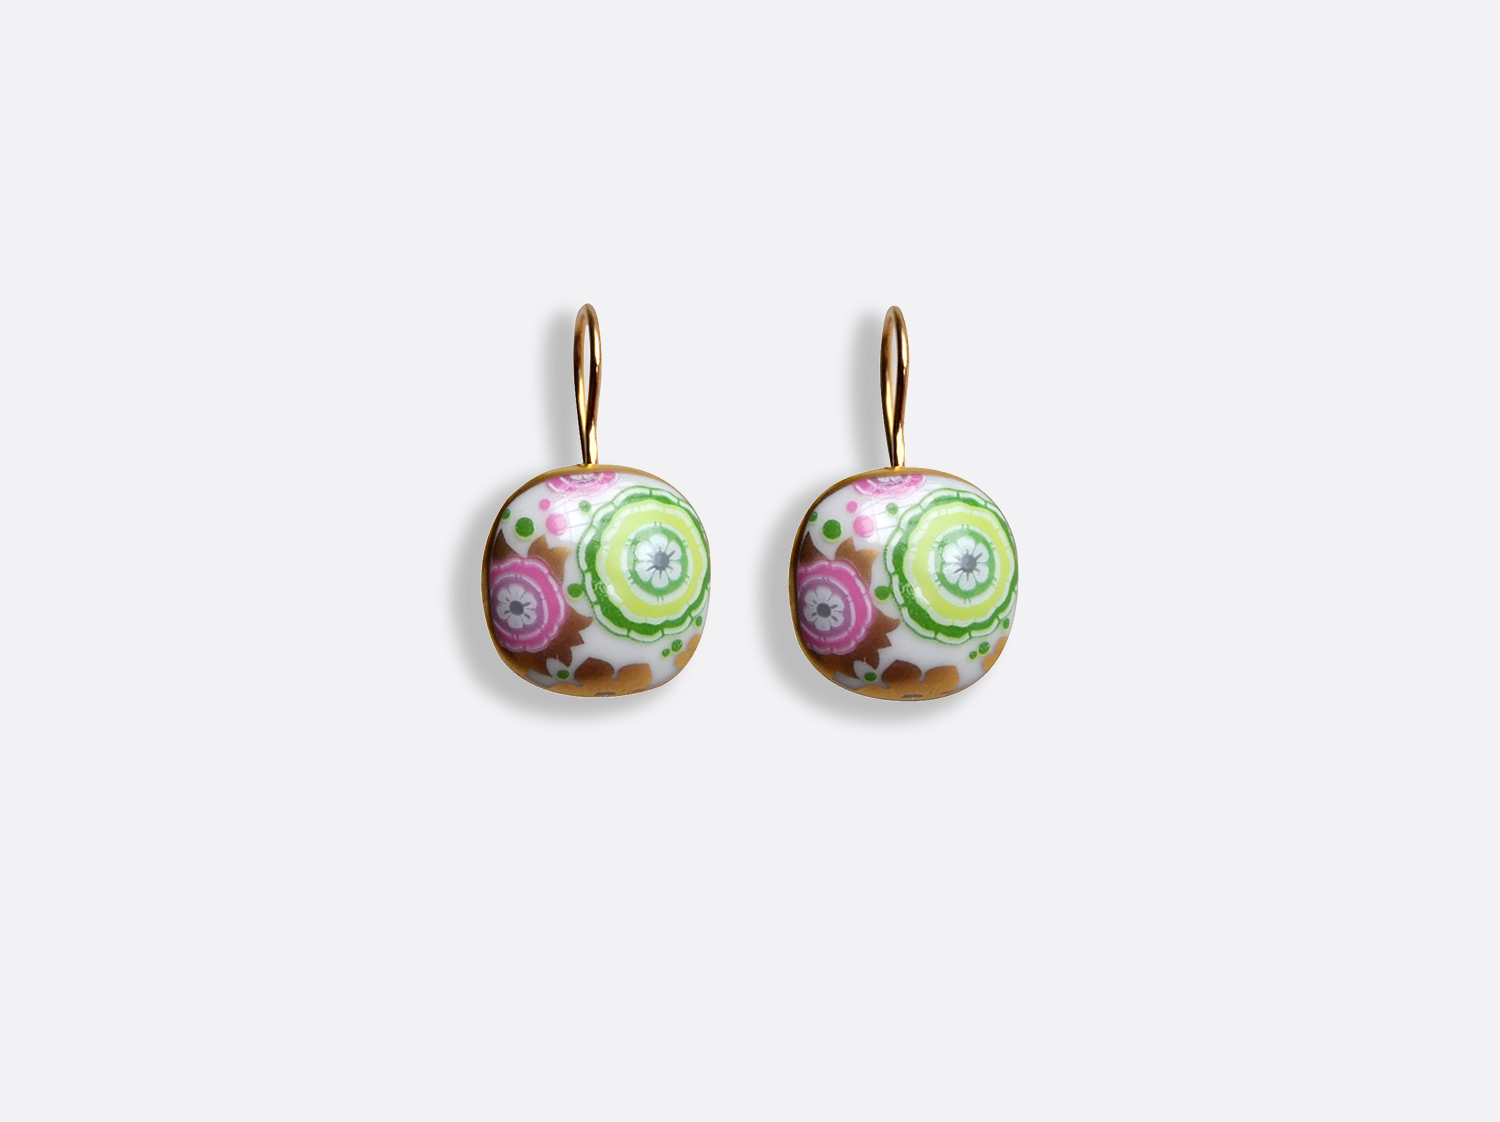 China Earrings of the collection Syracuse vert | Bernardaud